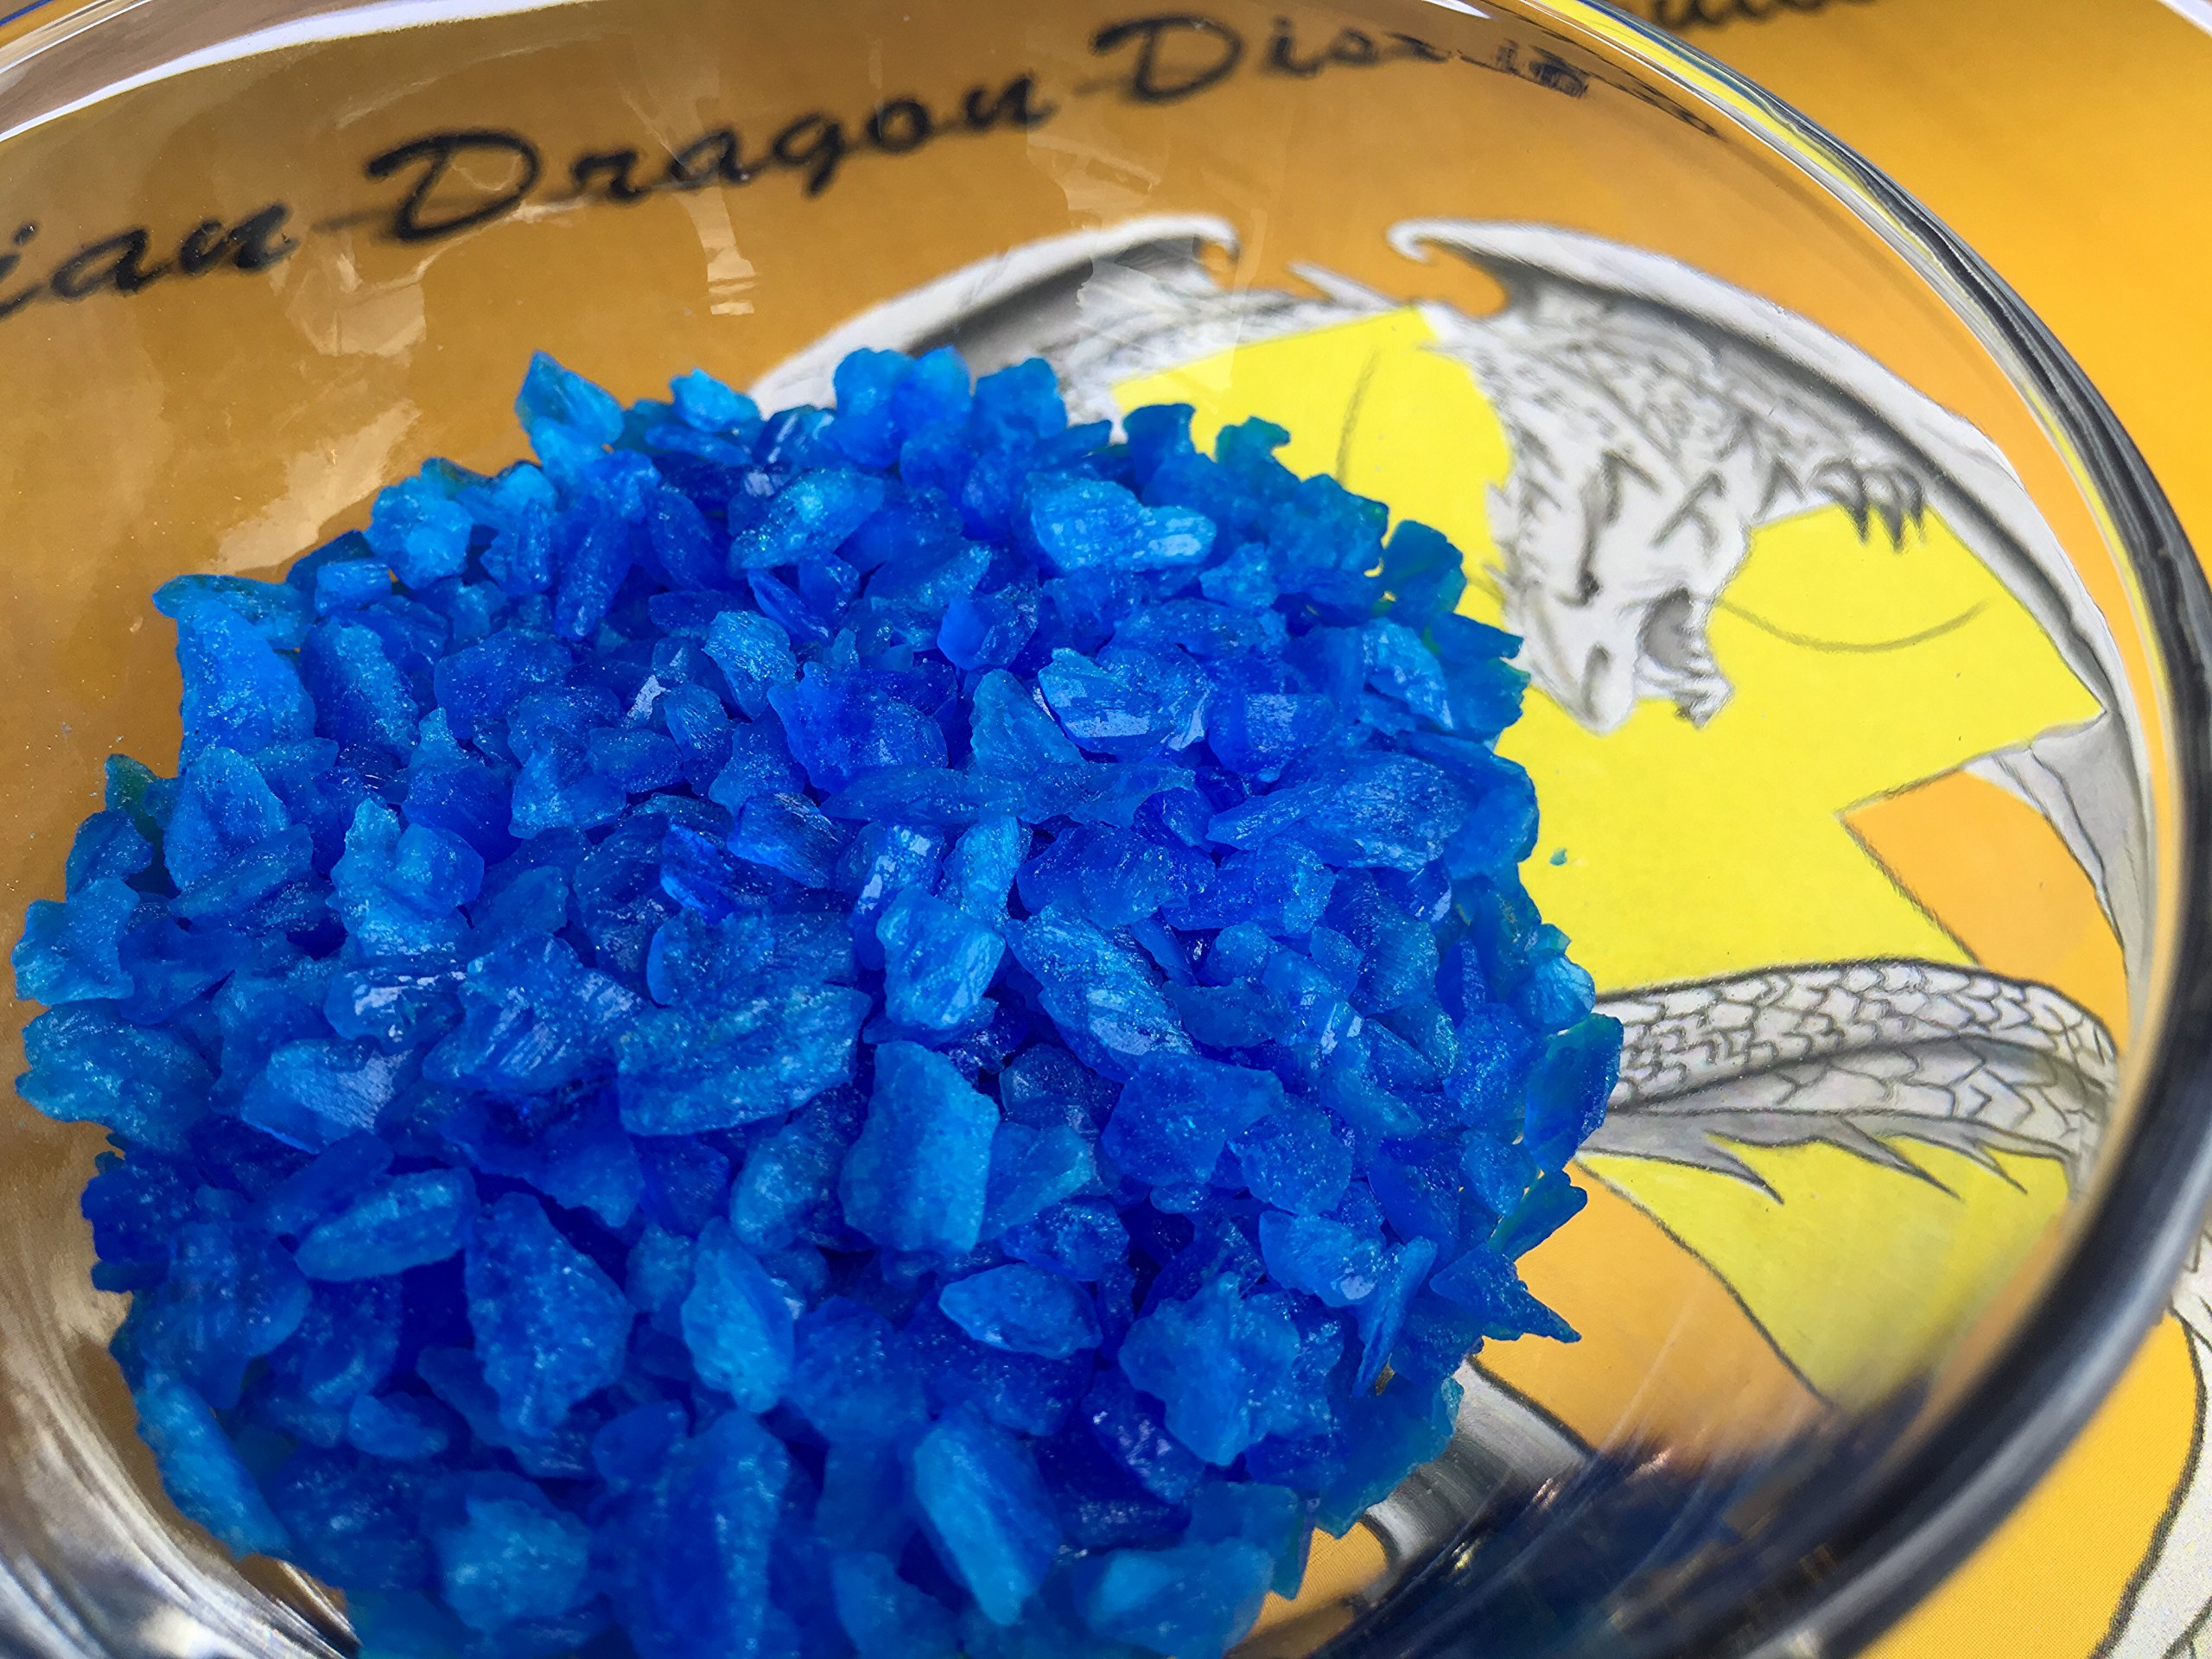 Copper Sulfate Crystals 99% Min. Purity 2 X 1lb Bottles